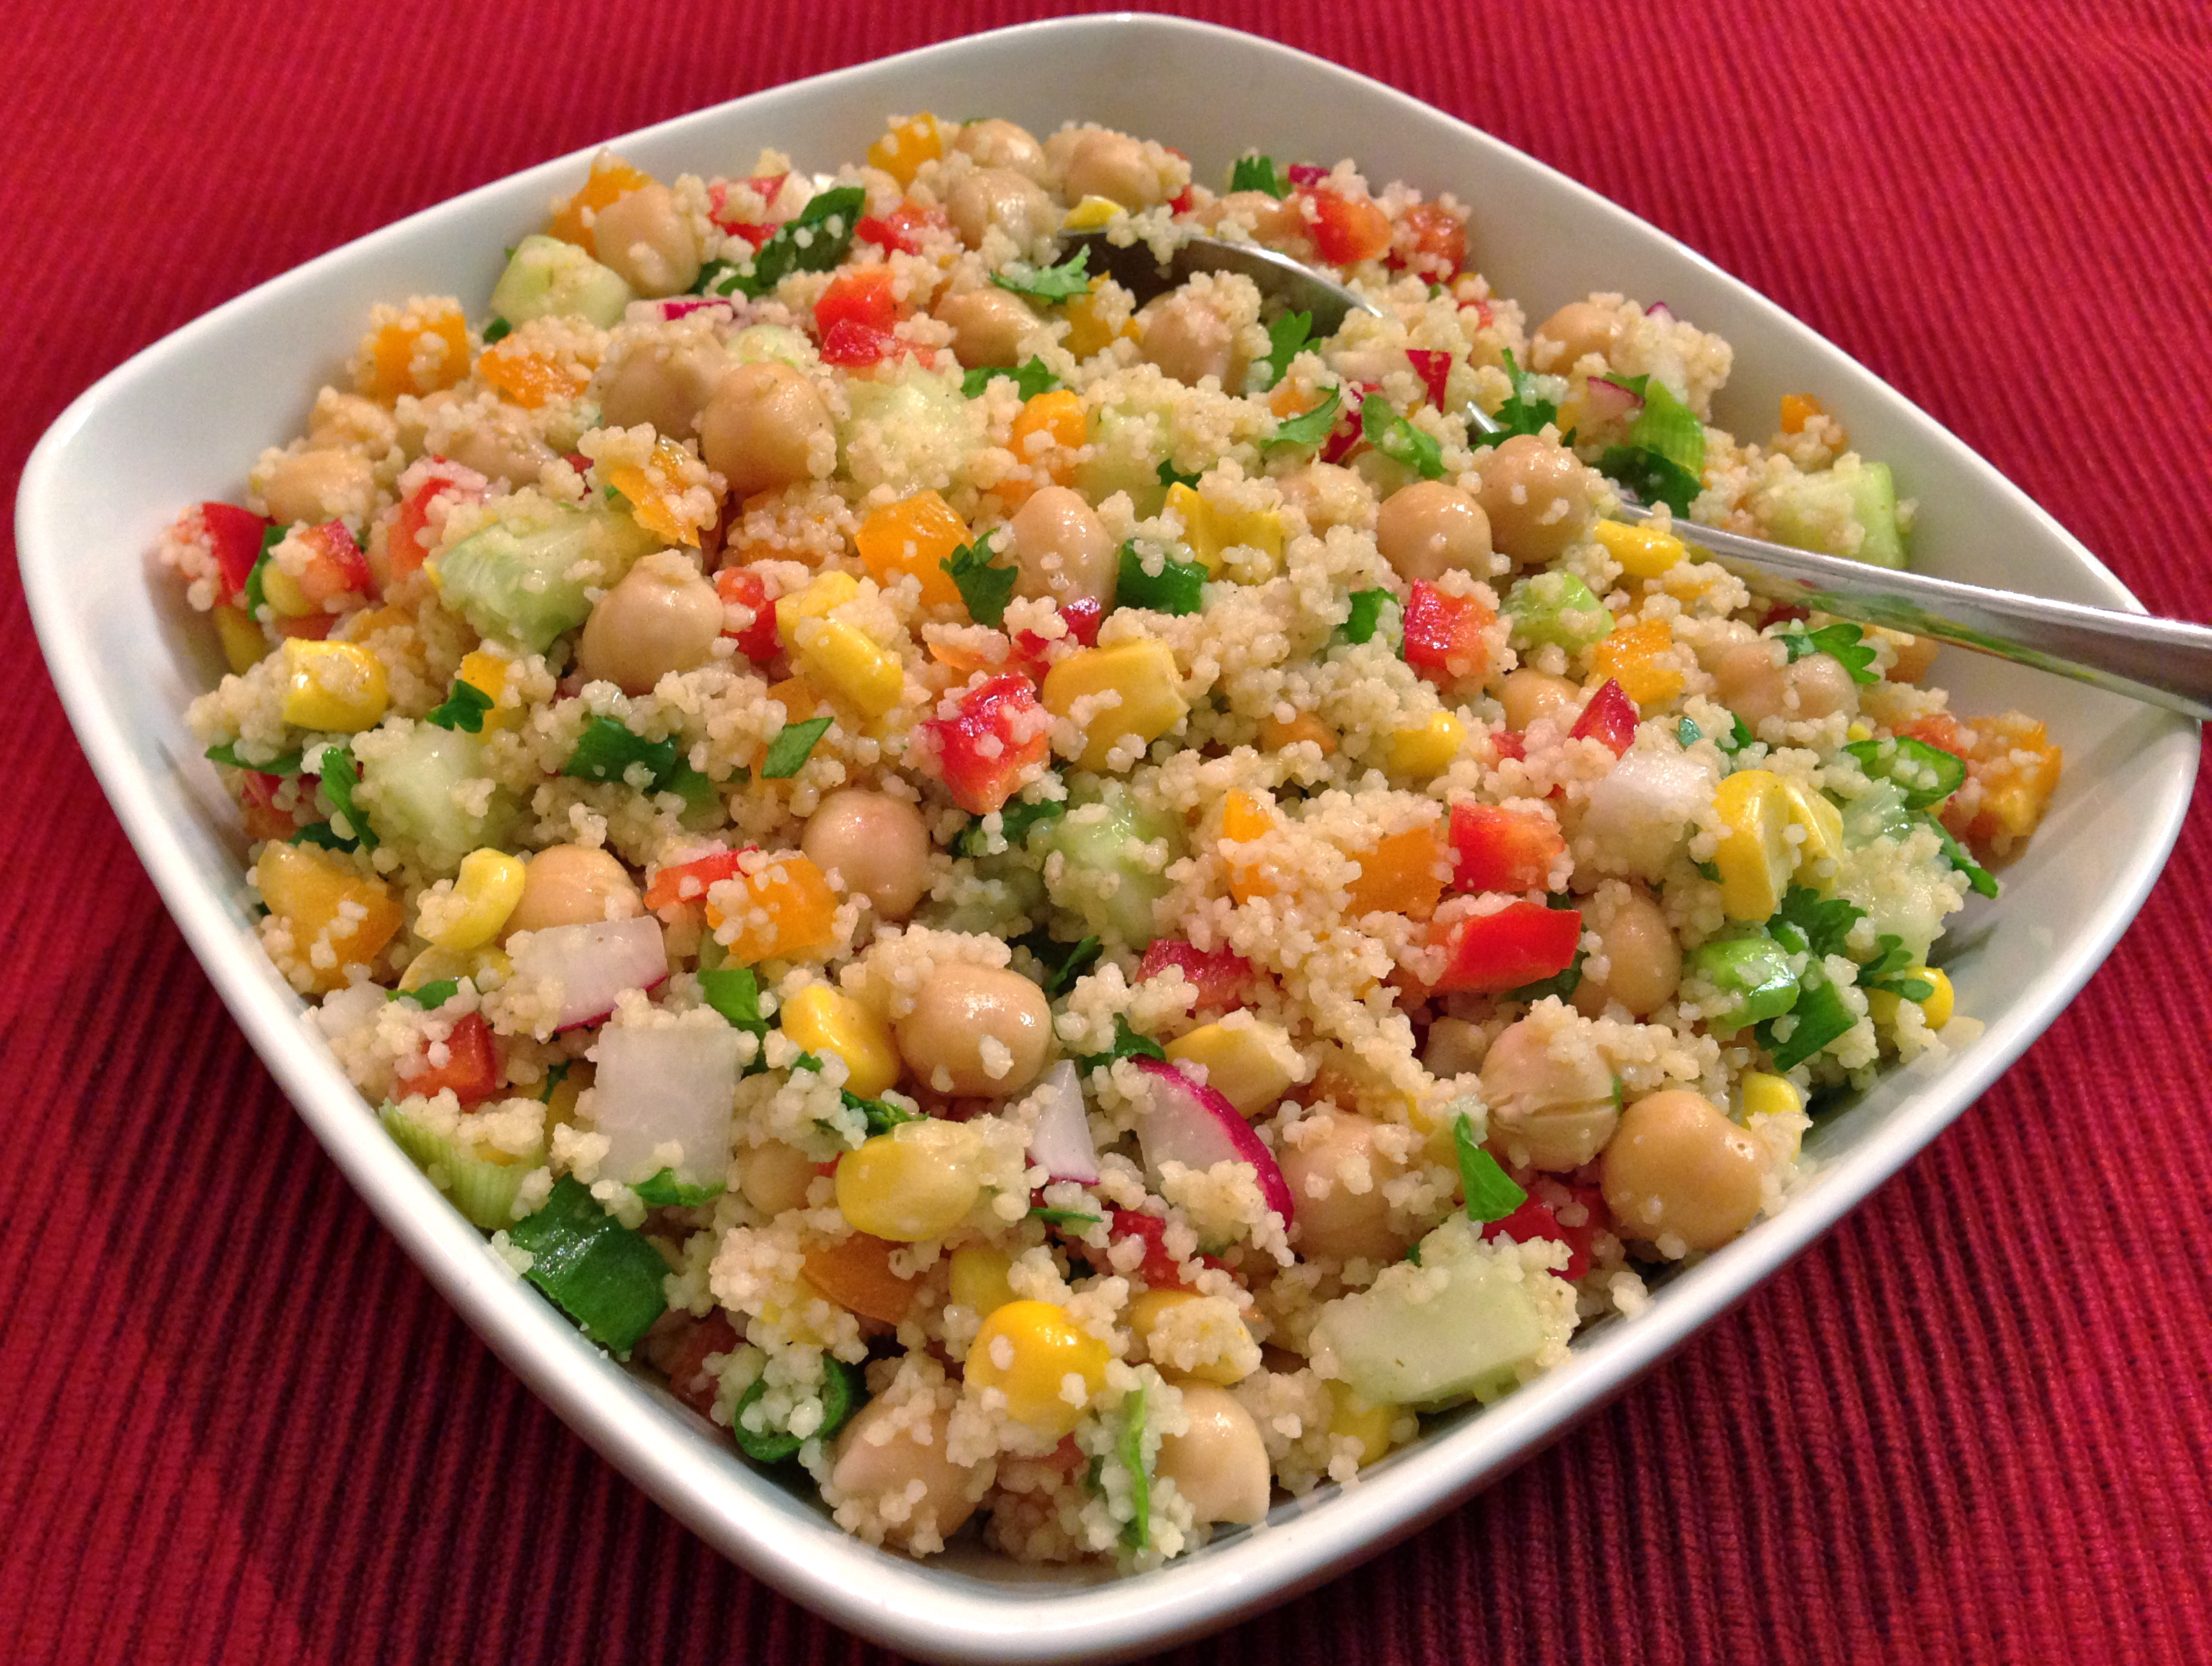 Couscous with Chickpea Salad